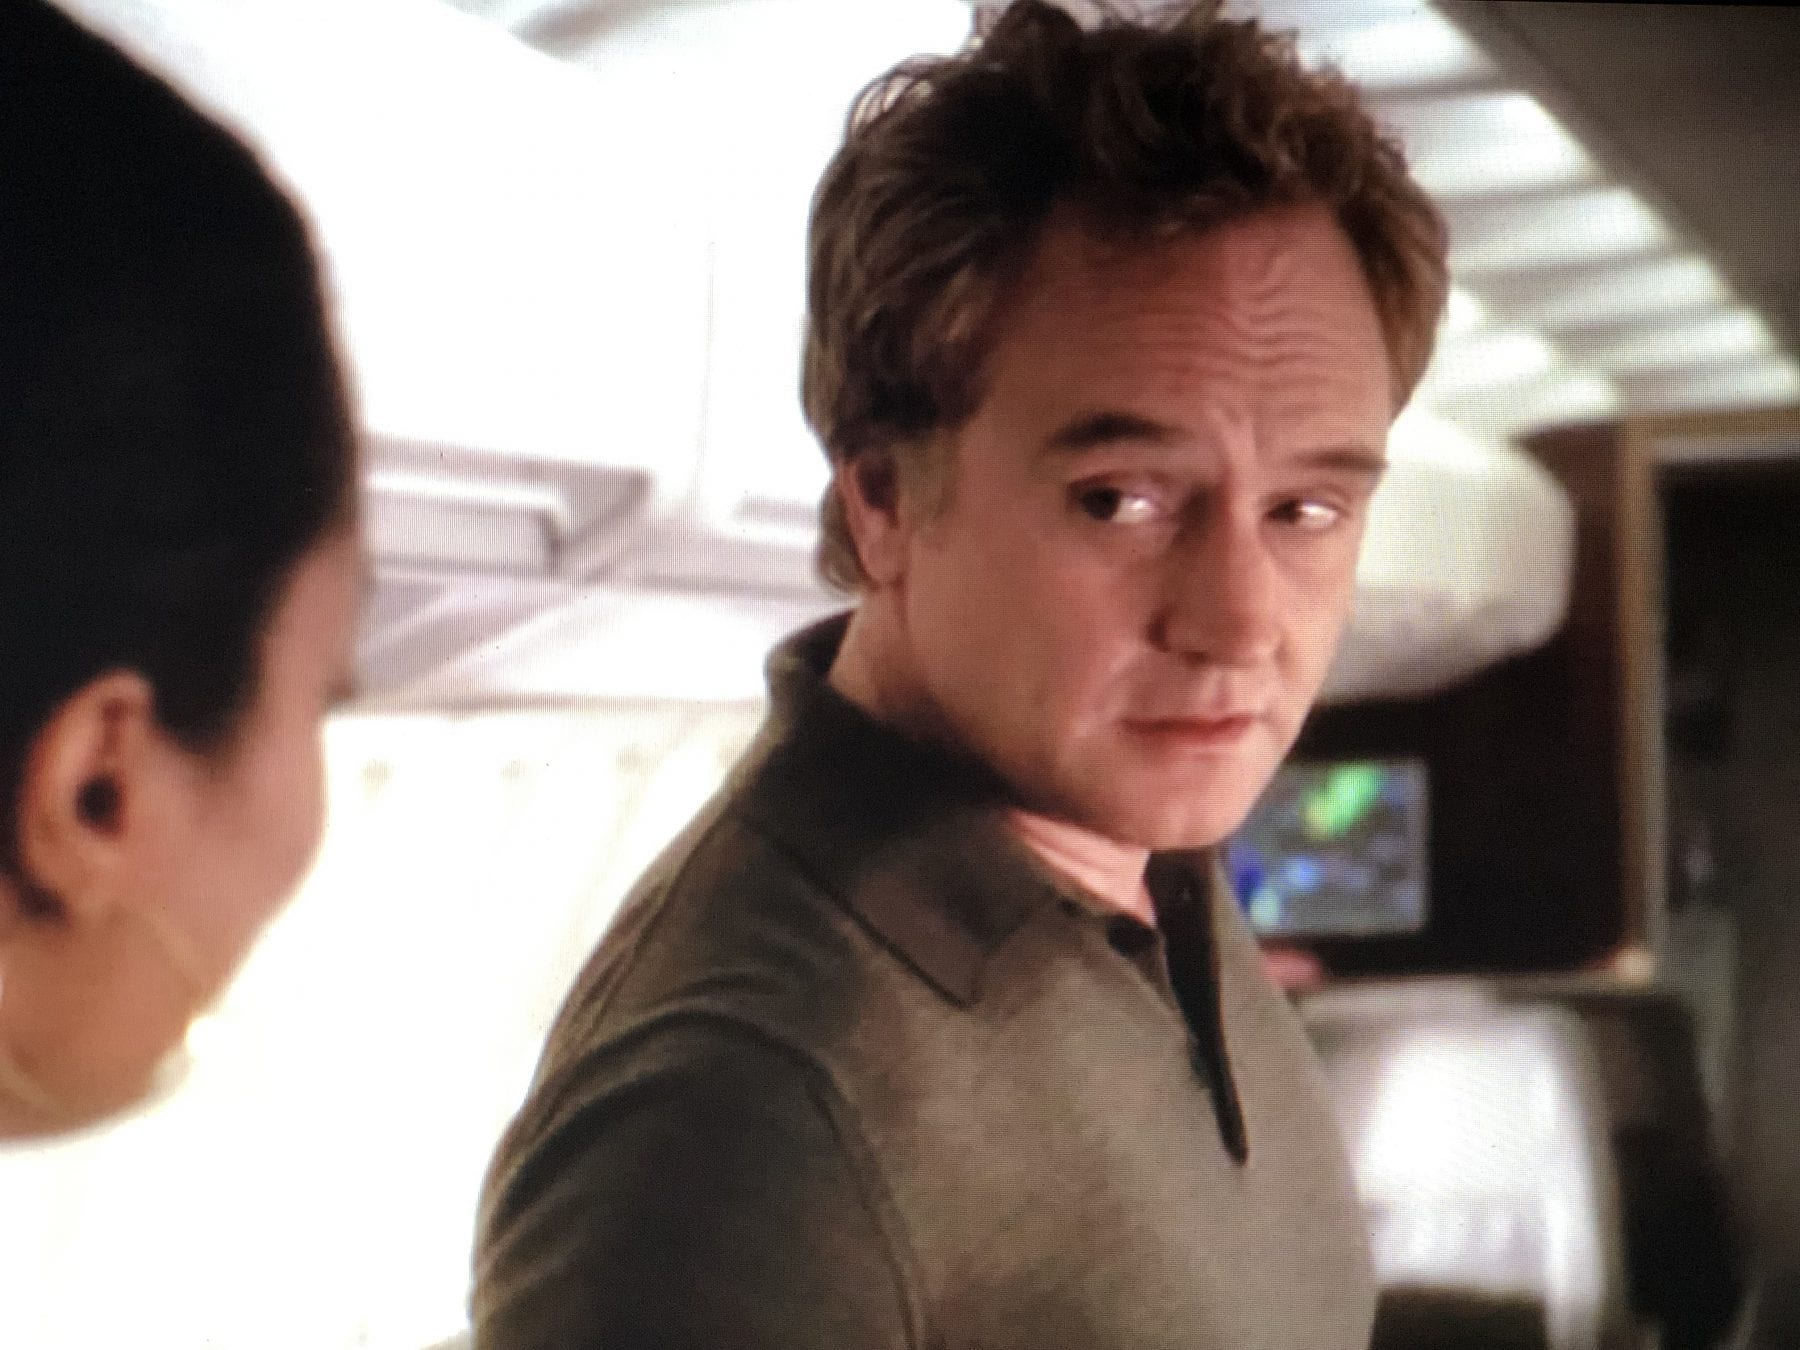 Bradley Whitford as Danny Tripp on Studio 60 on the Sunset Strip